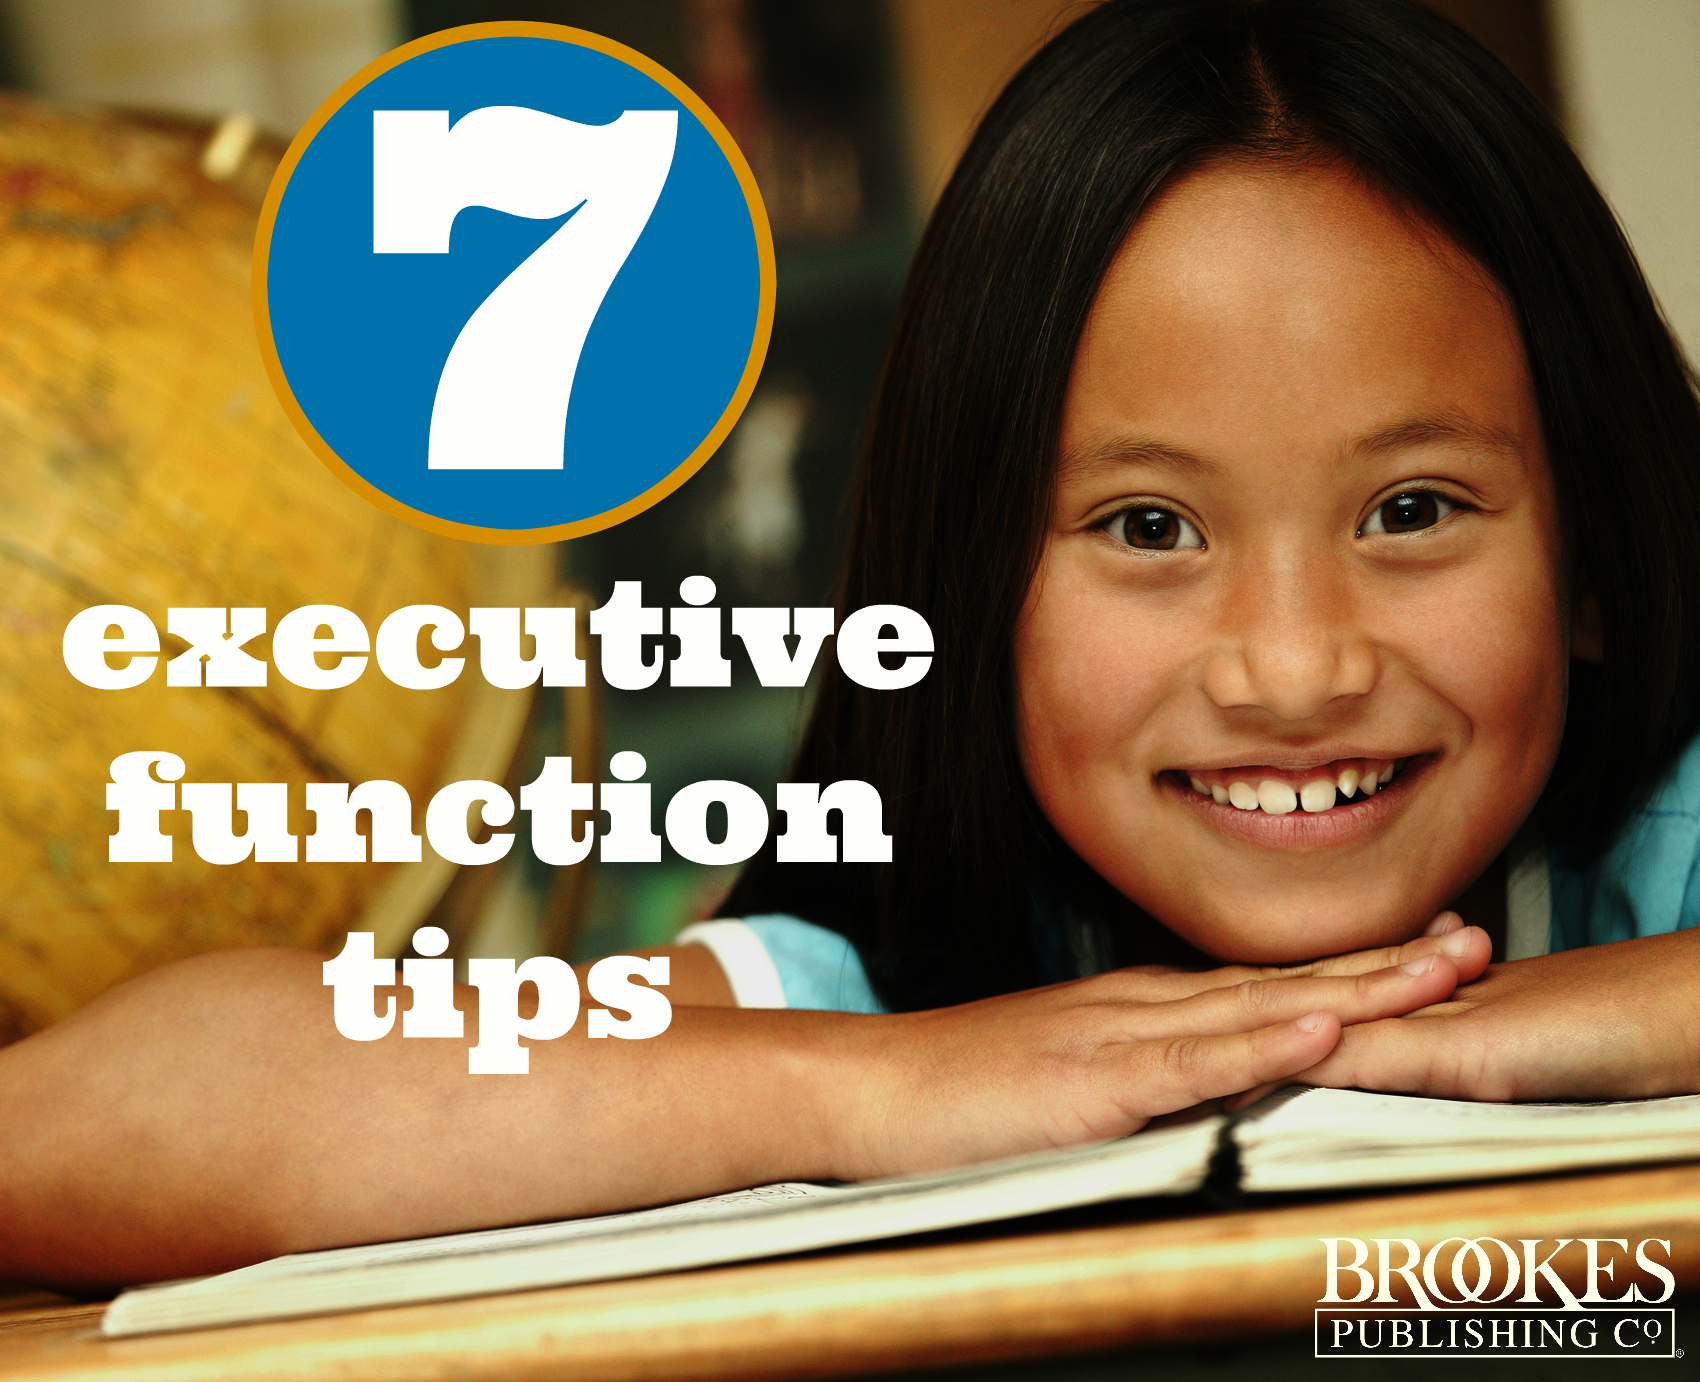 7 executive function tips